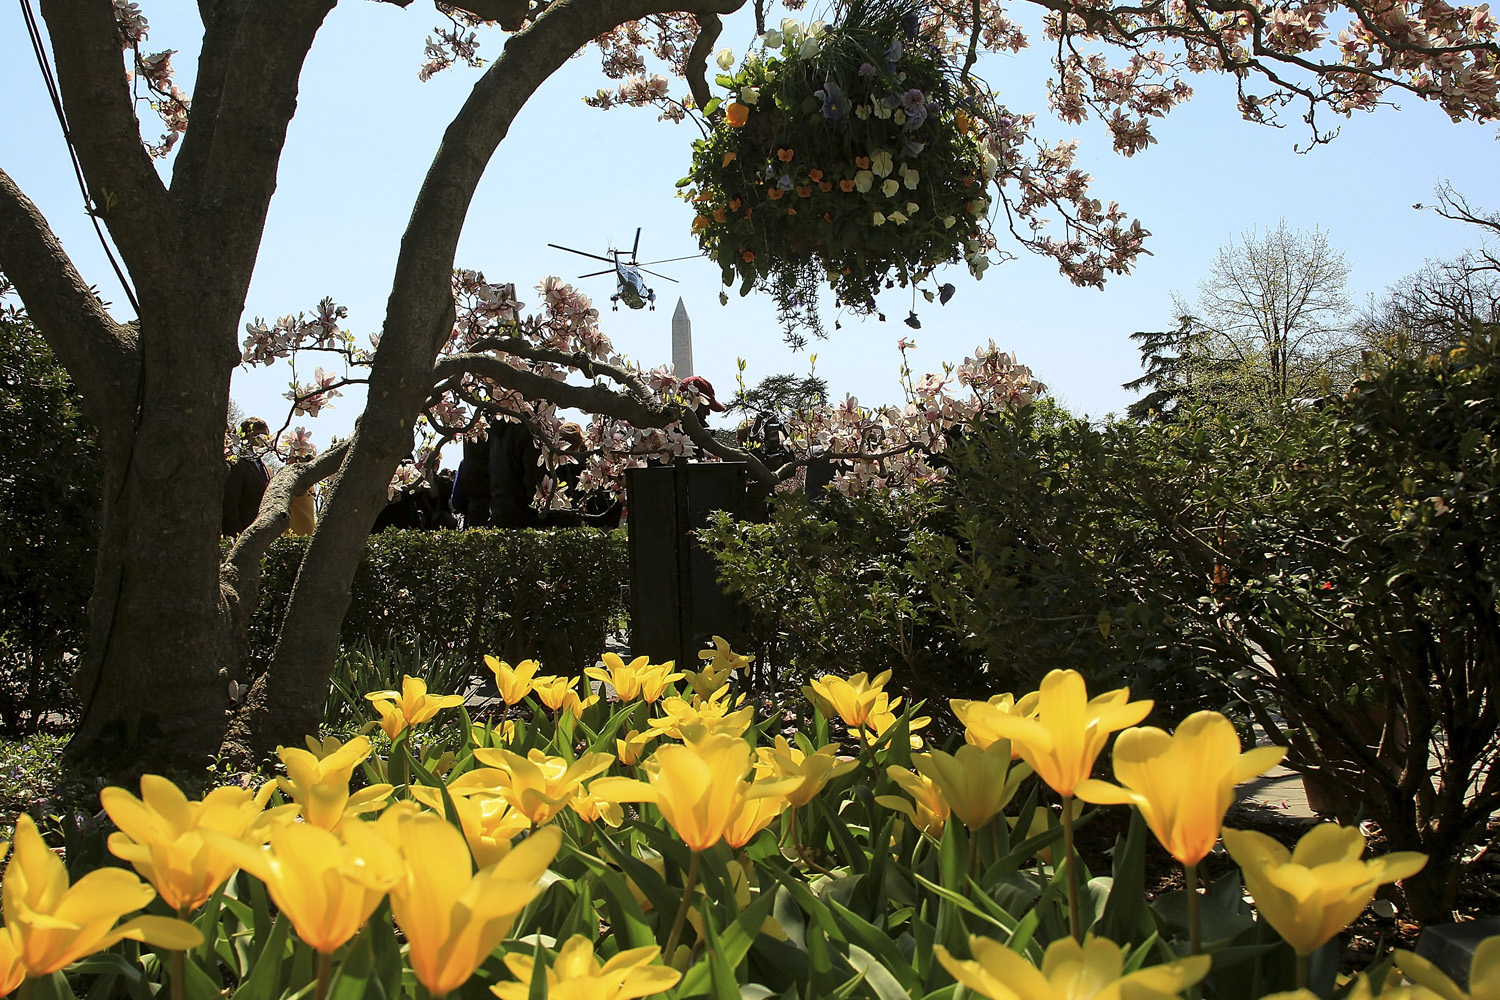 April 6, 2011. Flowers are in bloom in the Rose Garden as Marine One carrying U.S. President Barack Obama takes off from the south lawn of the White House in Washington, DC.